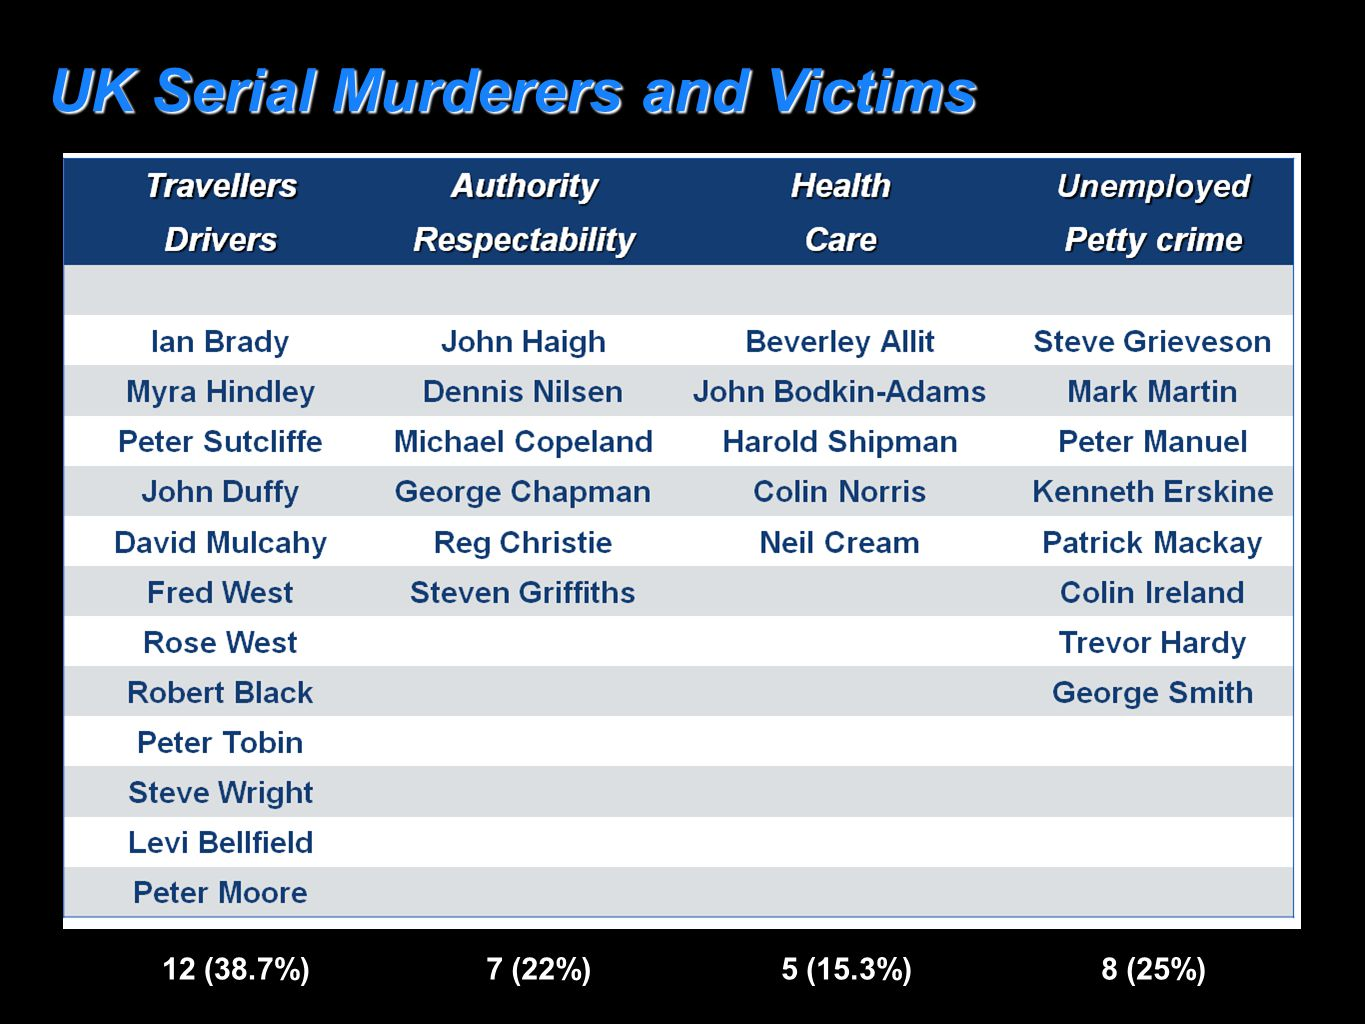 UK Serial Murderers and Victims 12 (38.7%) 7 (22%) 5 (15.3%) 8 (25%)